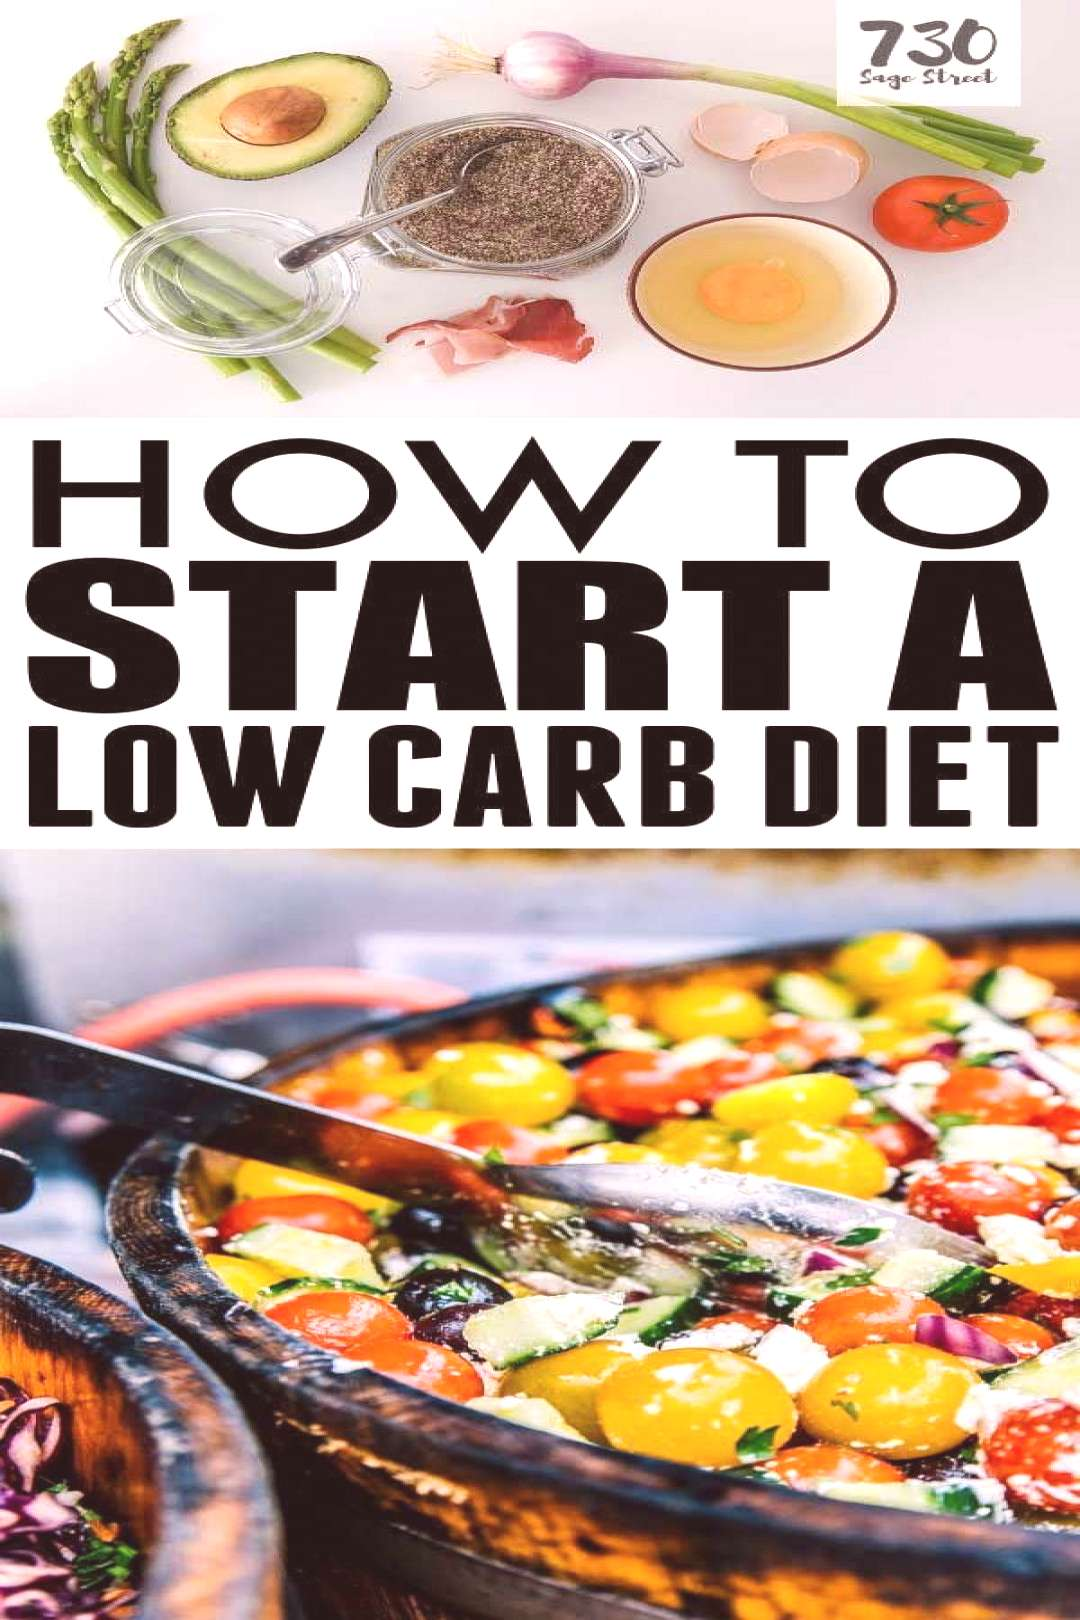 If you have been wondering how to start a low carb diet, this guide will give you the information y